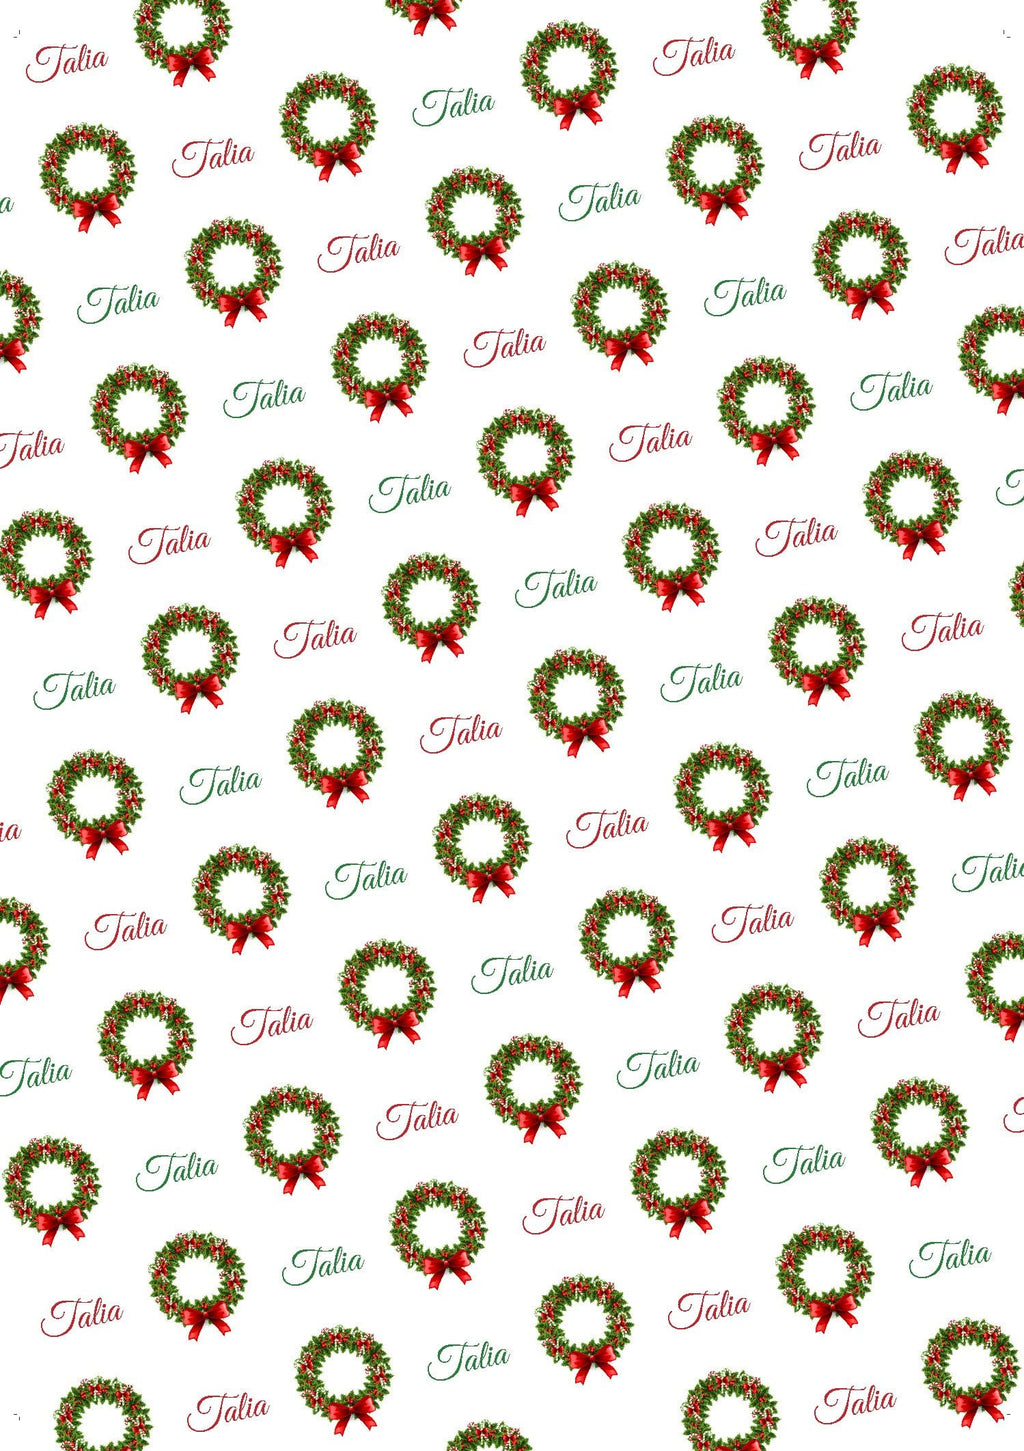 Christmas Wreath Personalized Gift Wrap - Potter's Printing